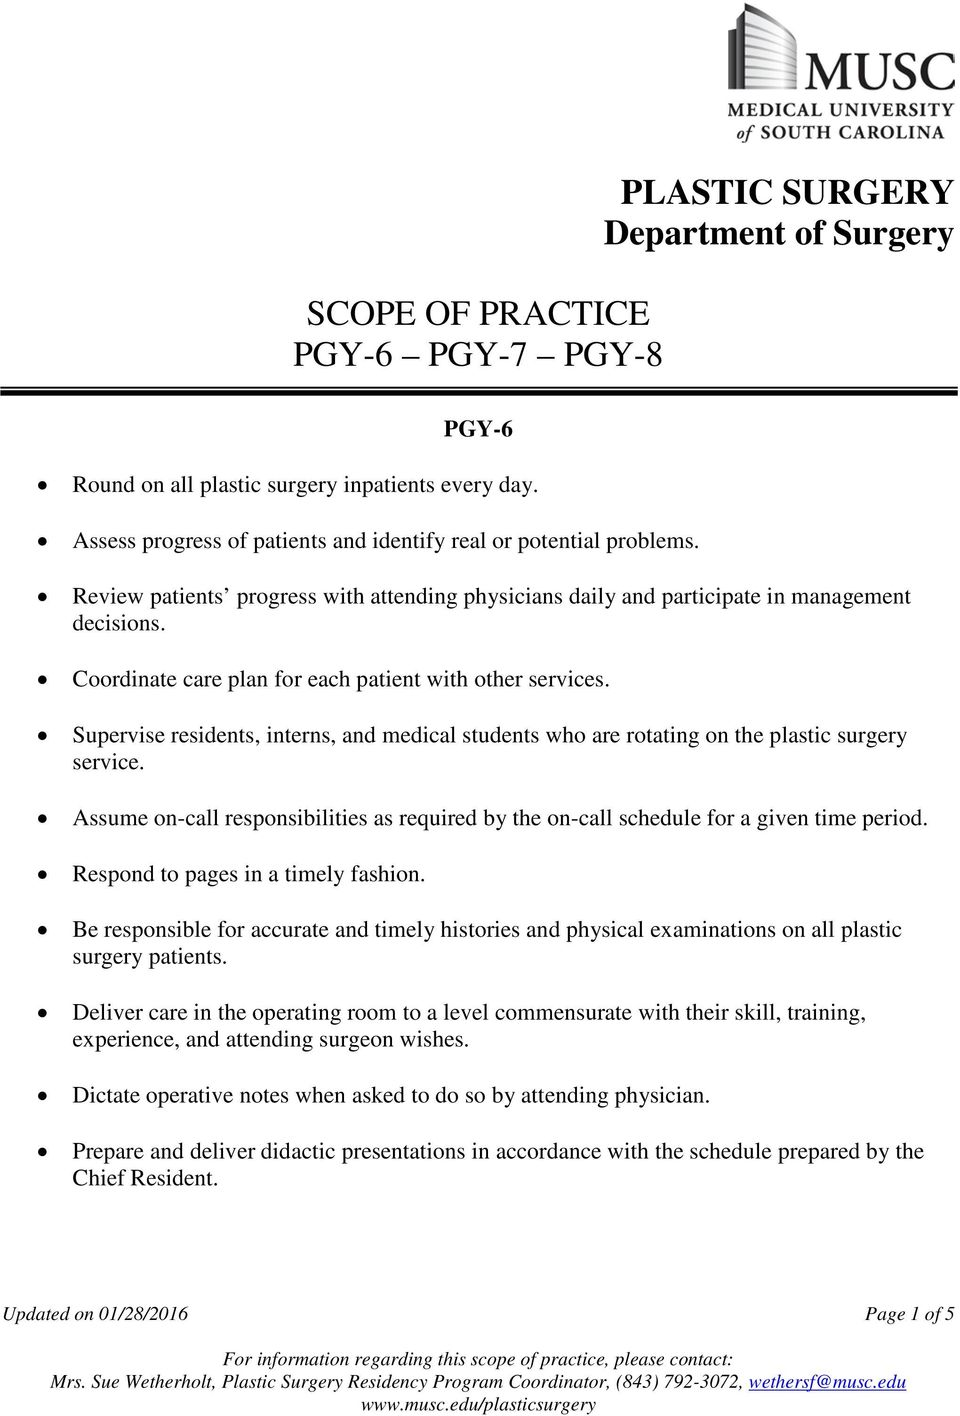 Supervise residents, interns, and medical students who are rotating on the plastic surgery service. Assume on-call responsibilities as required by the on-call schedule for a given time period.